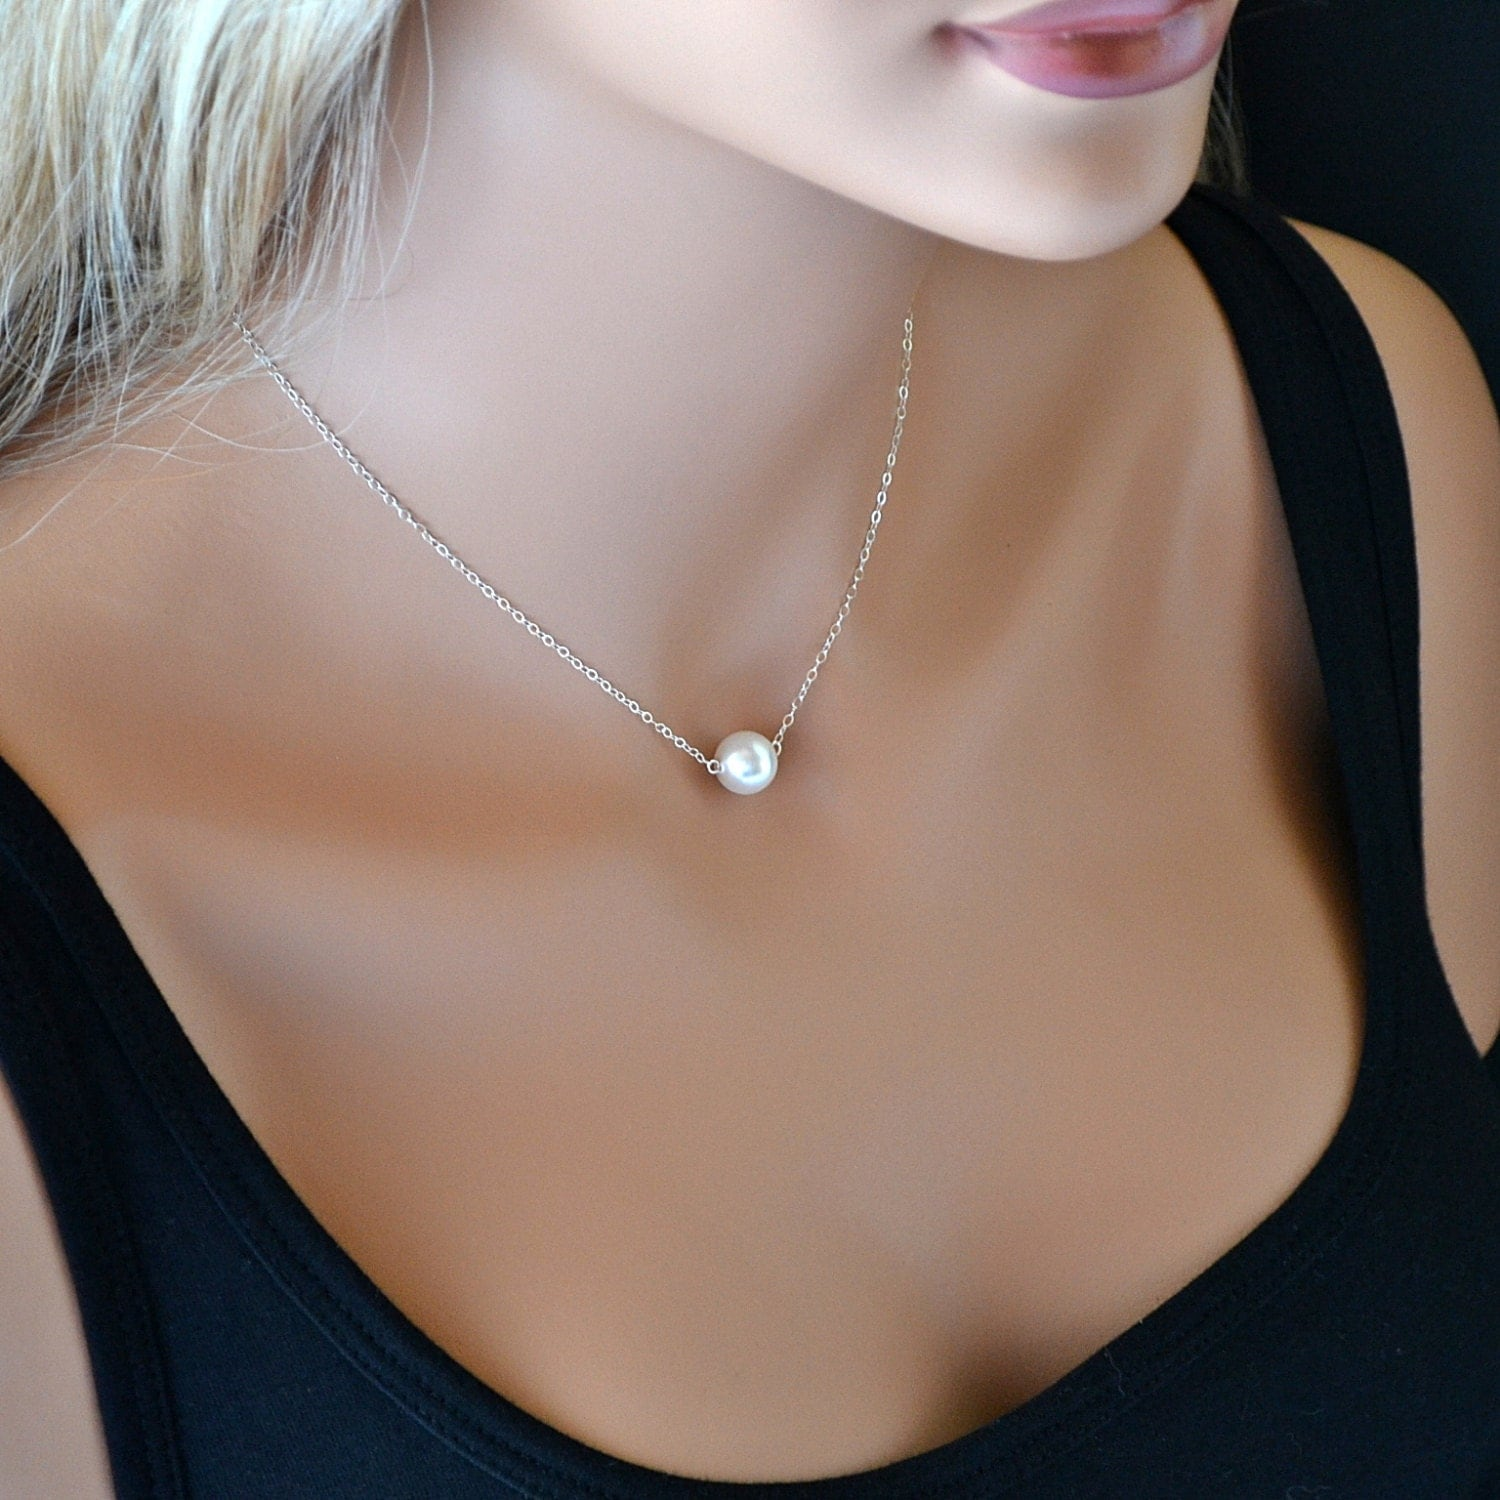 Single Pearl Necklace Bridesmaid Gift Single Pearl Necklace